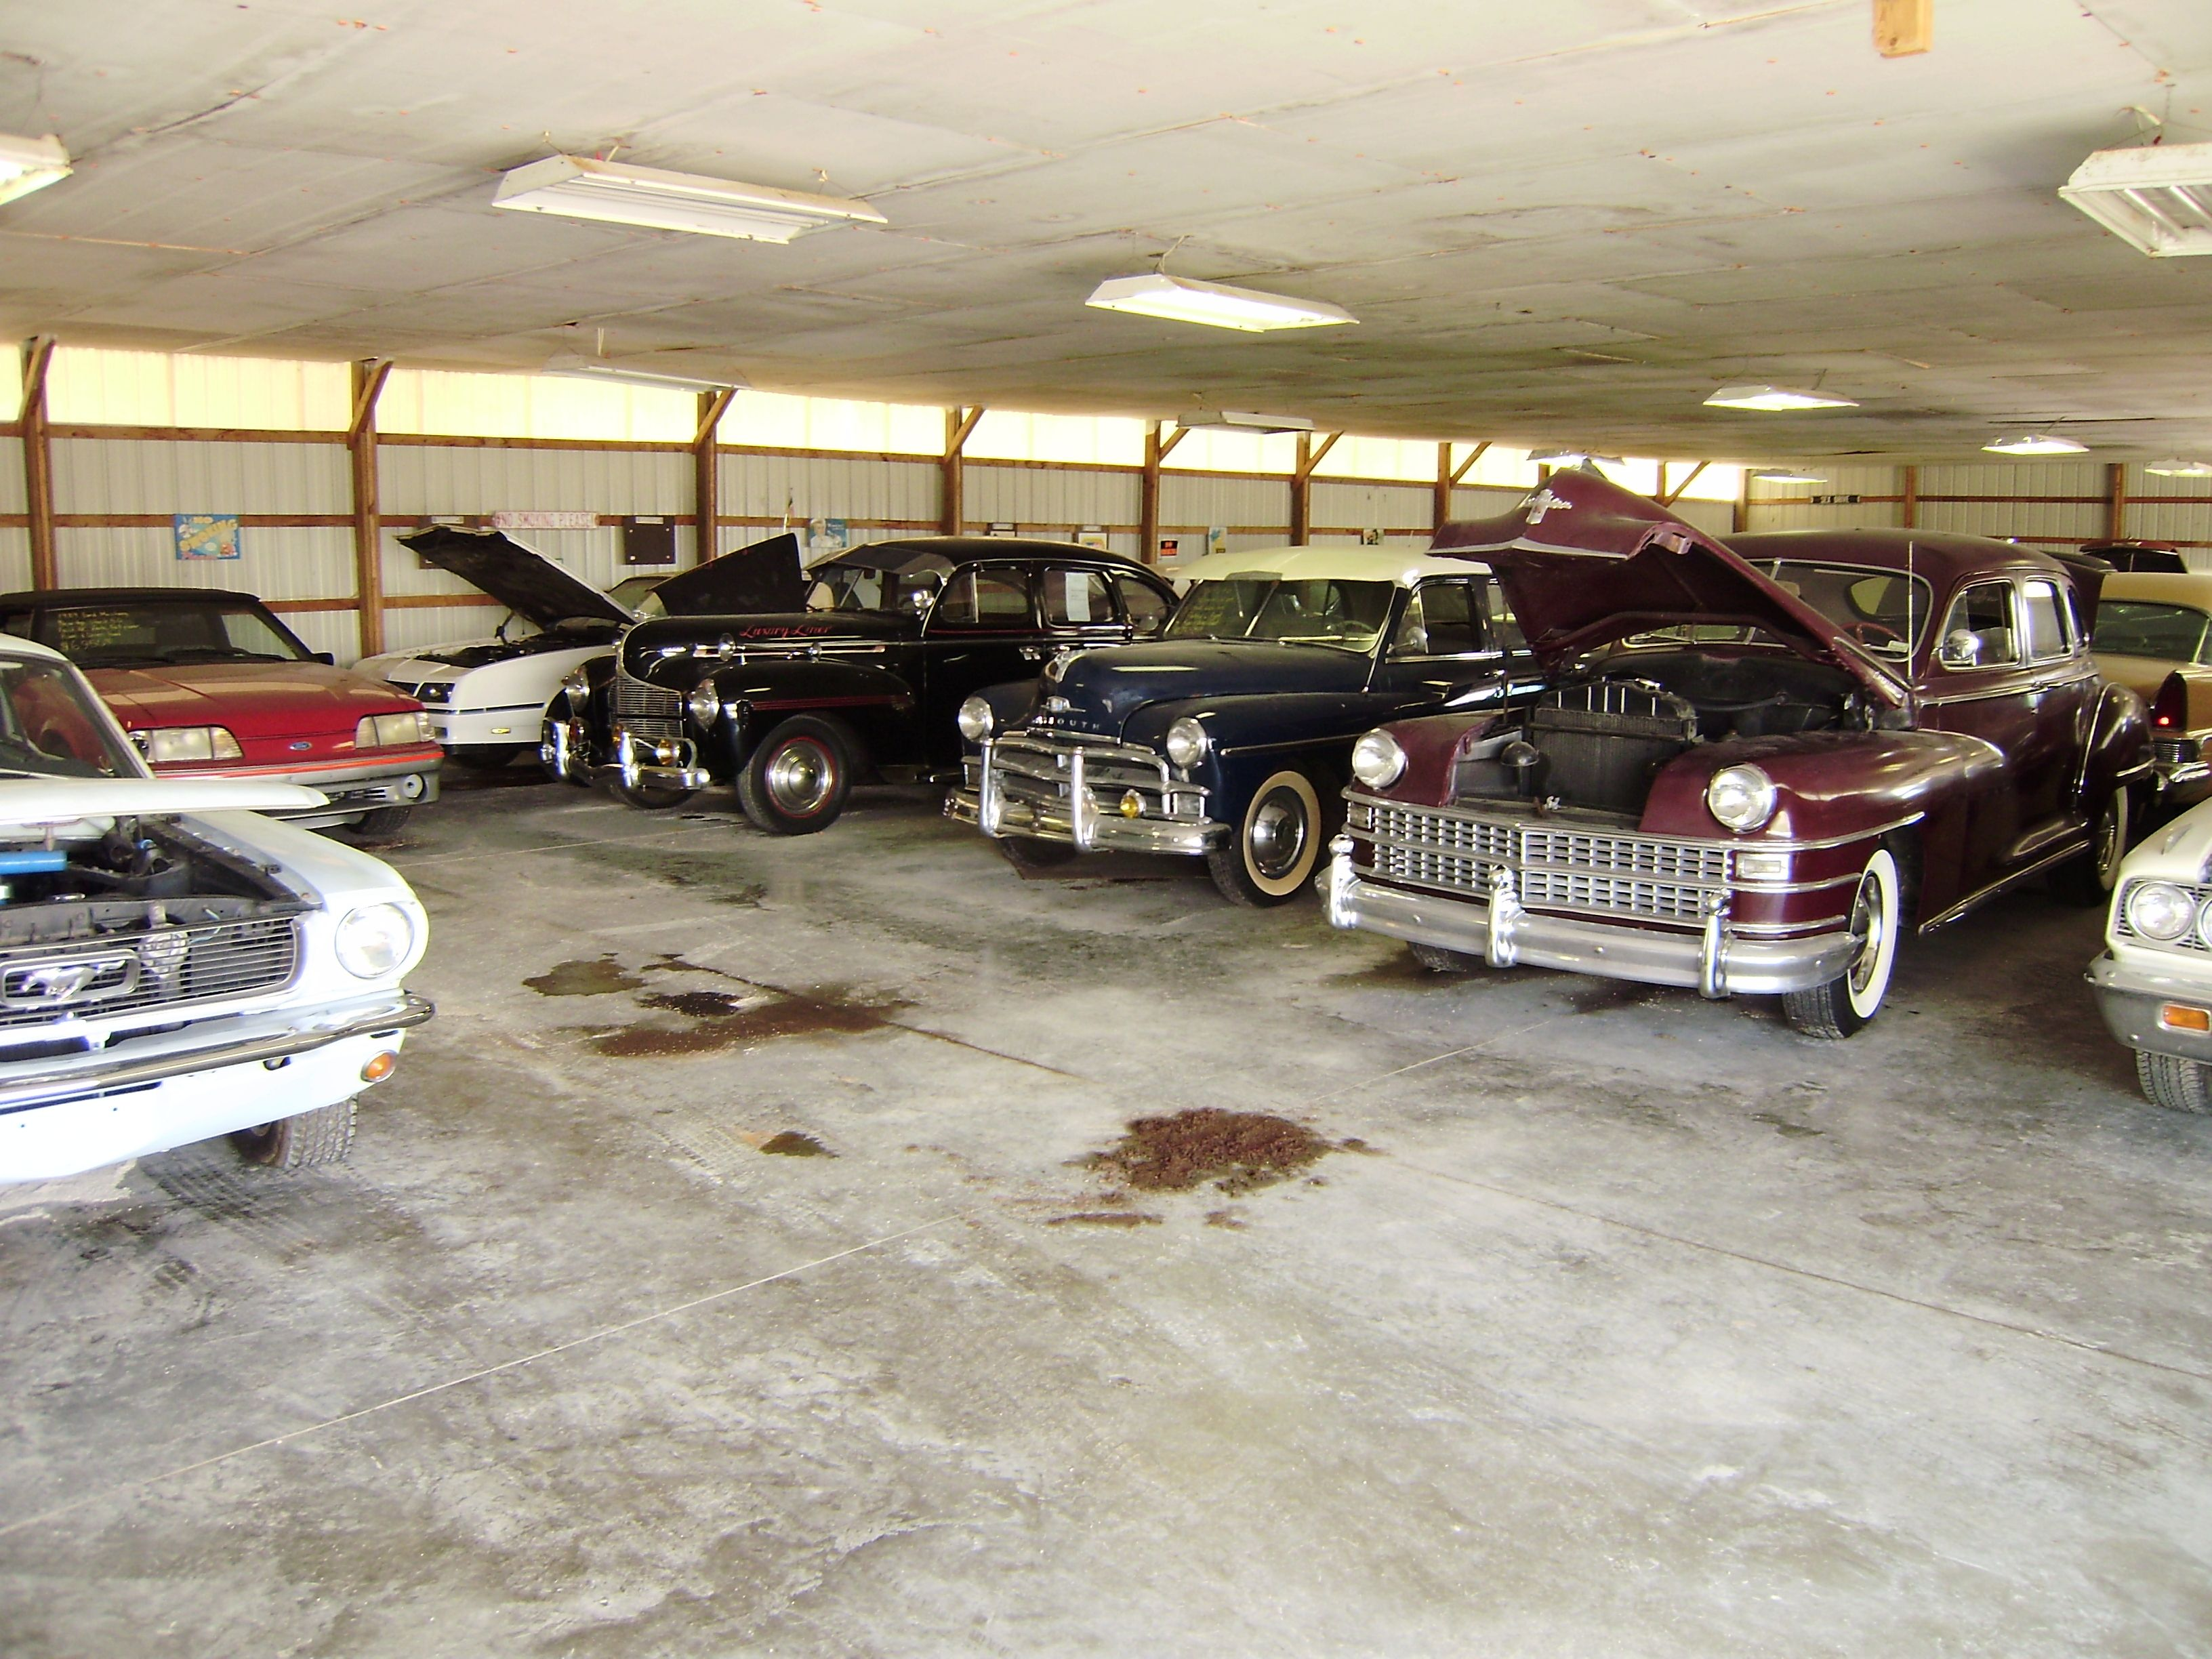 Massive Fire Damages Country Classic Cars in Staunton